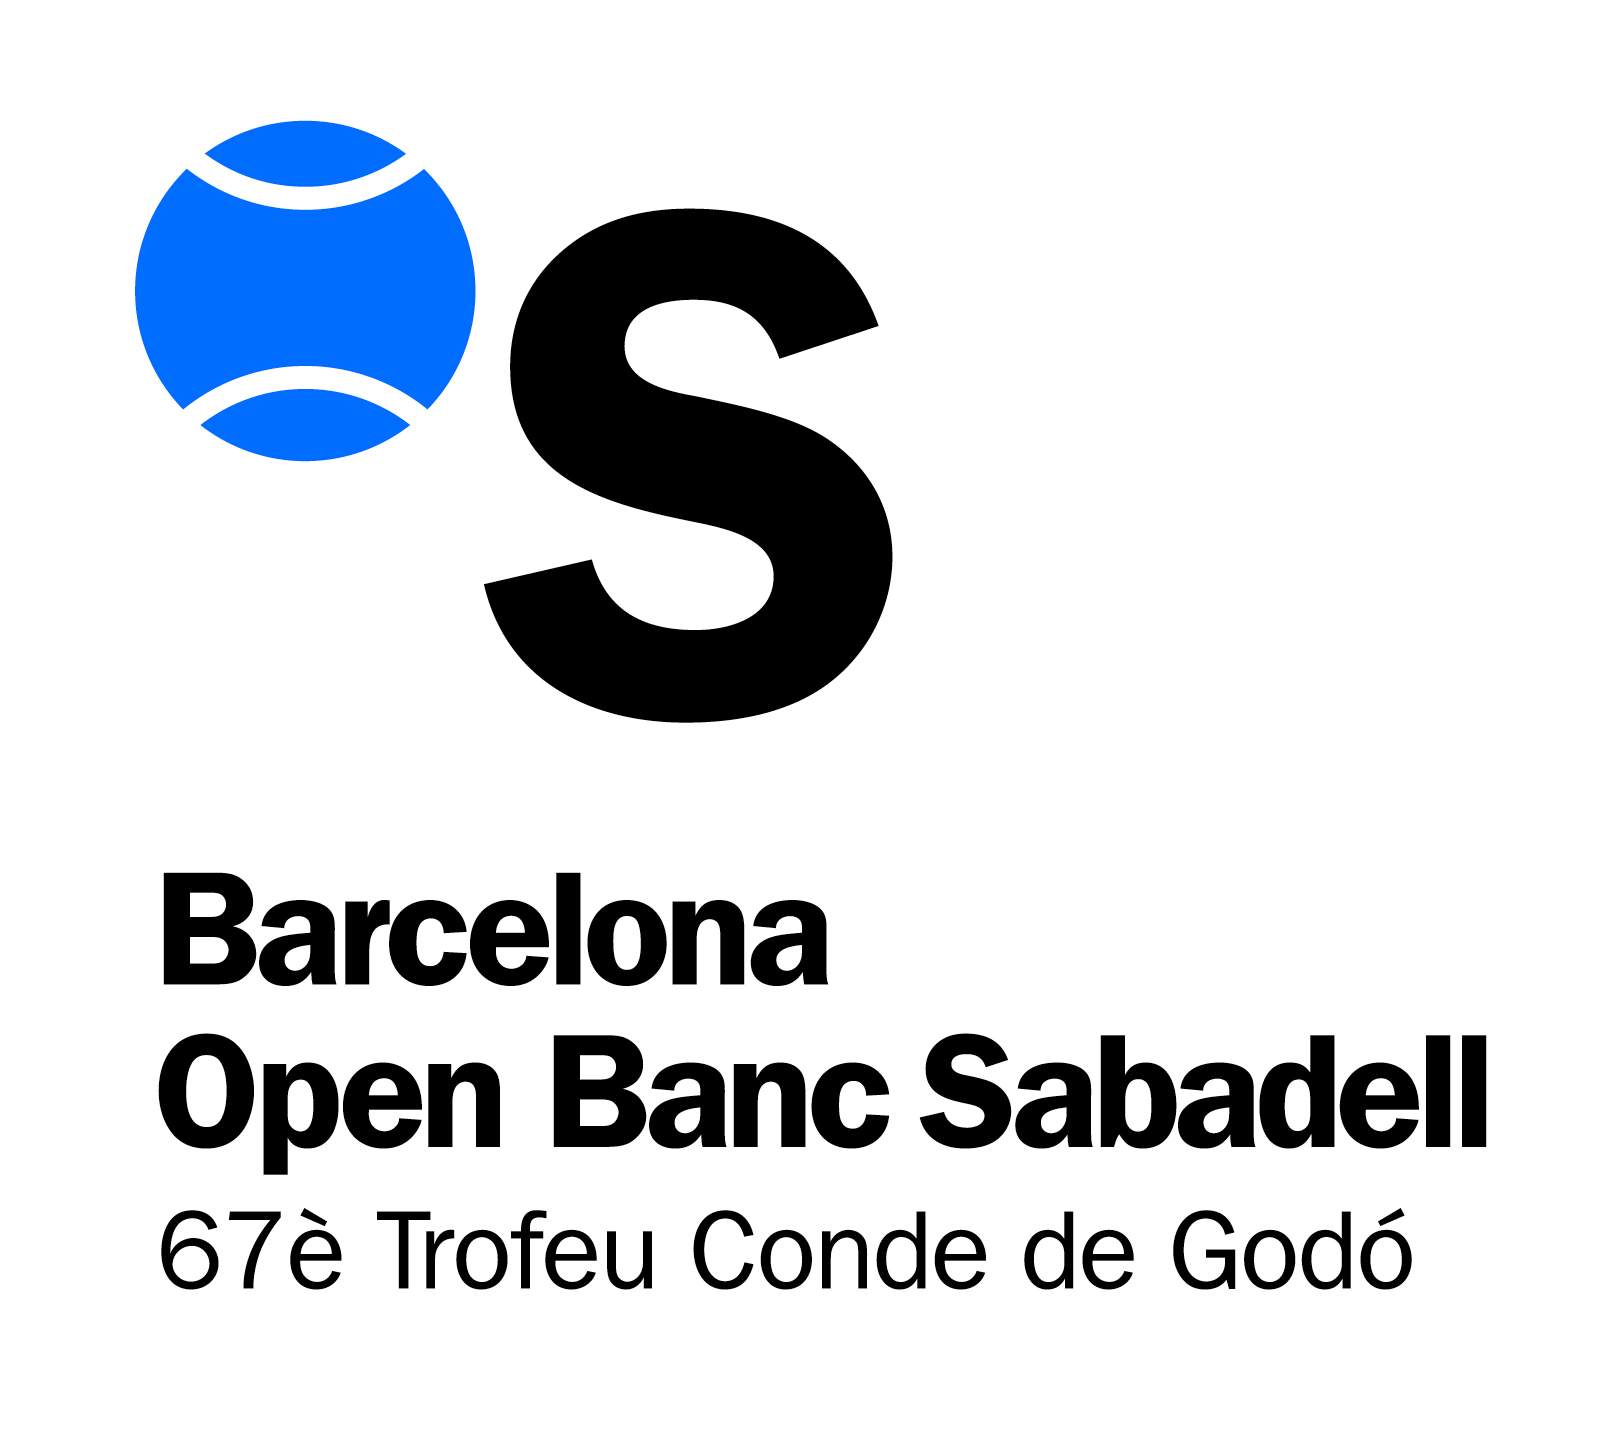 Barcelona_Open_Sabadell_bc